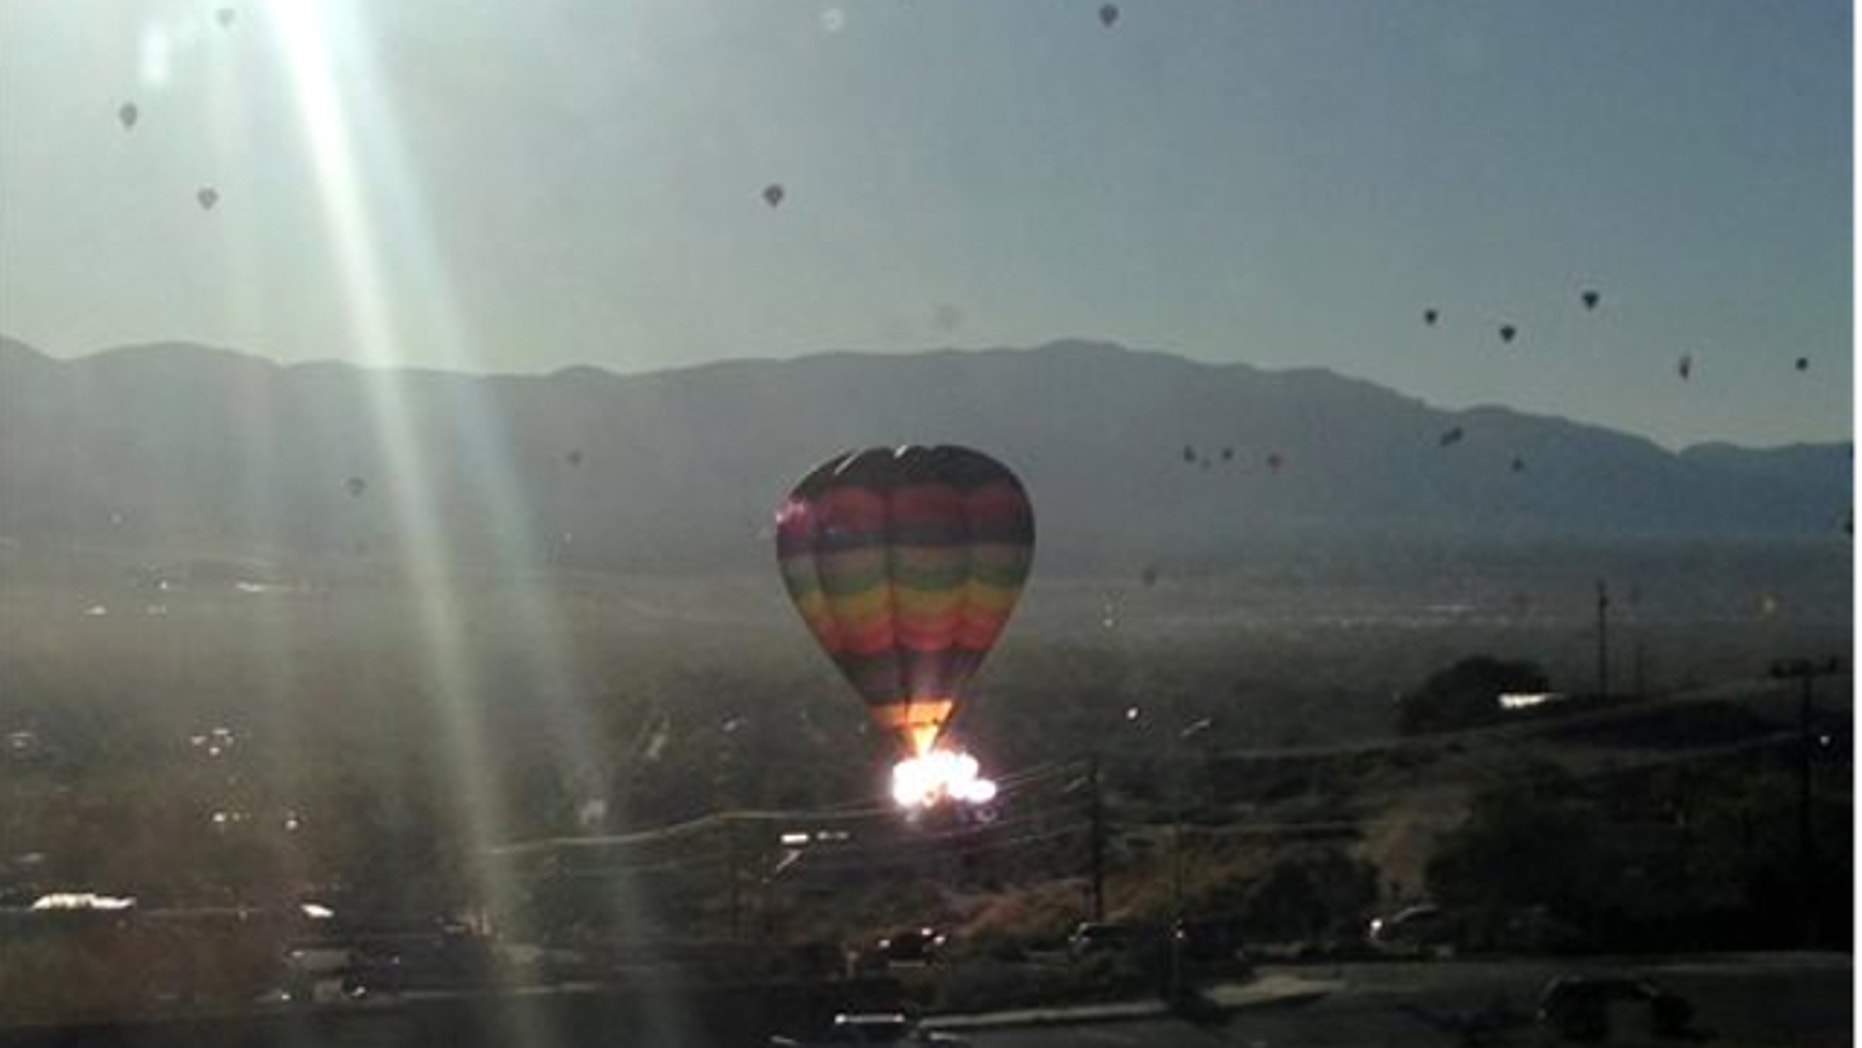 """Oct. 9, 2013: In this photo provided by the Catalyst, the balloon """"New Mexico Sunrise"""" strikes a power line after launching during mass ascension at the 2013 Albuquerque International Balloon Fiesta in Albuquerque, N.M."""